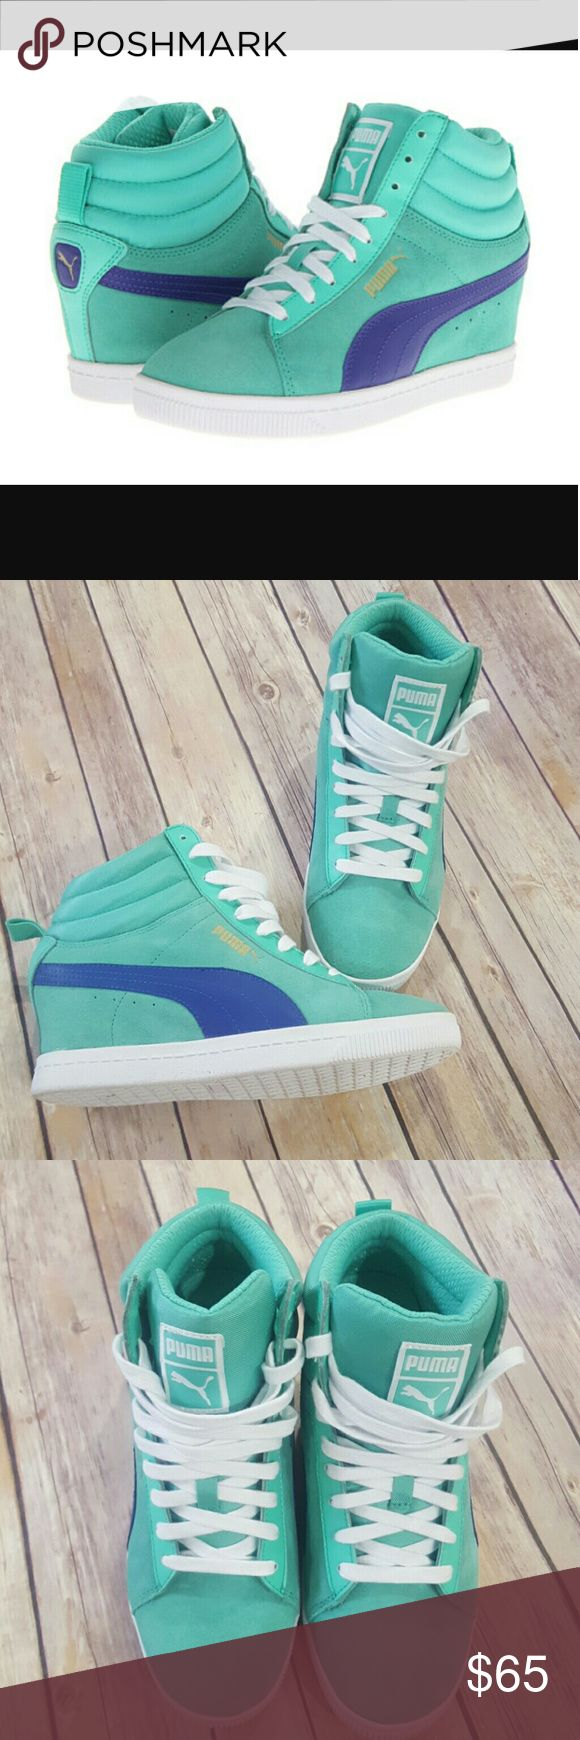 Puma Classic Wedge sneaker size 8 Pure classic Wedge sneaker in Electric Green size 8. Only worn a couple times. Wedge height is 3 inches. Suede upper, rubber sole. Excellent condition. Puma Shoes Sneakers